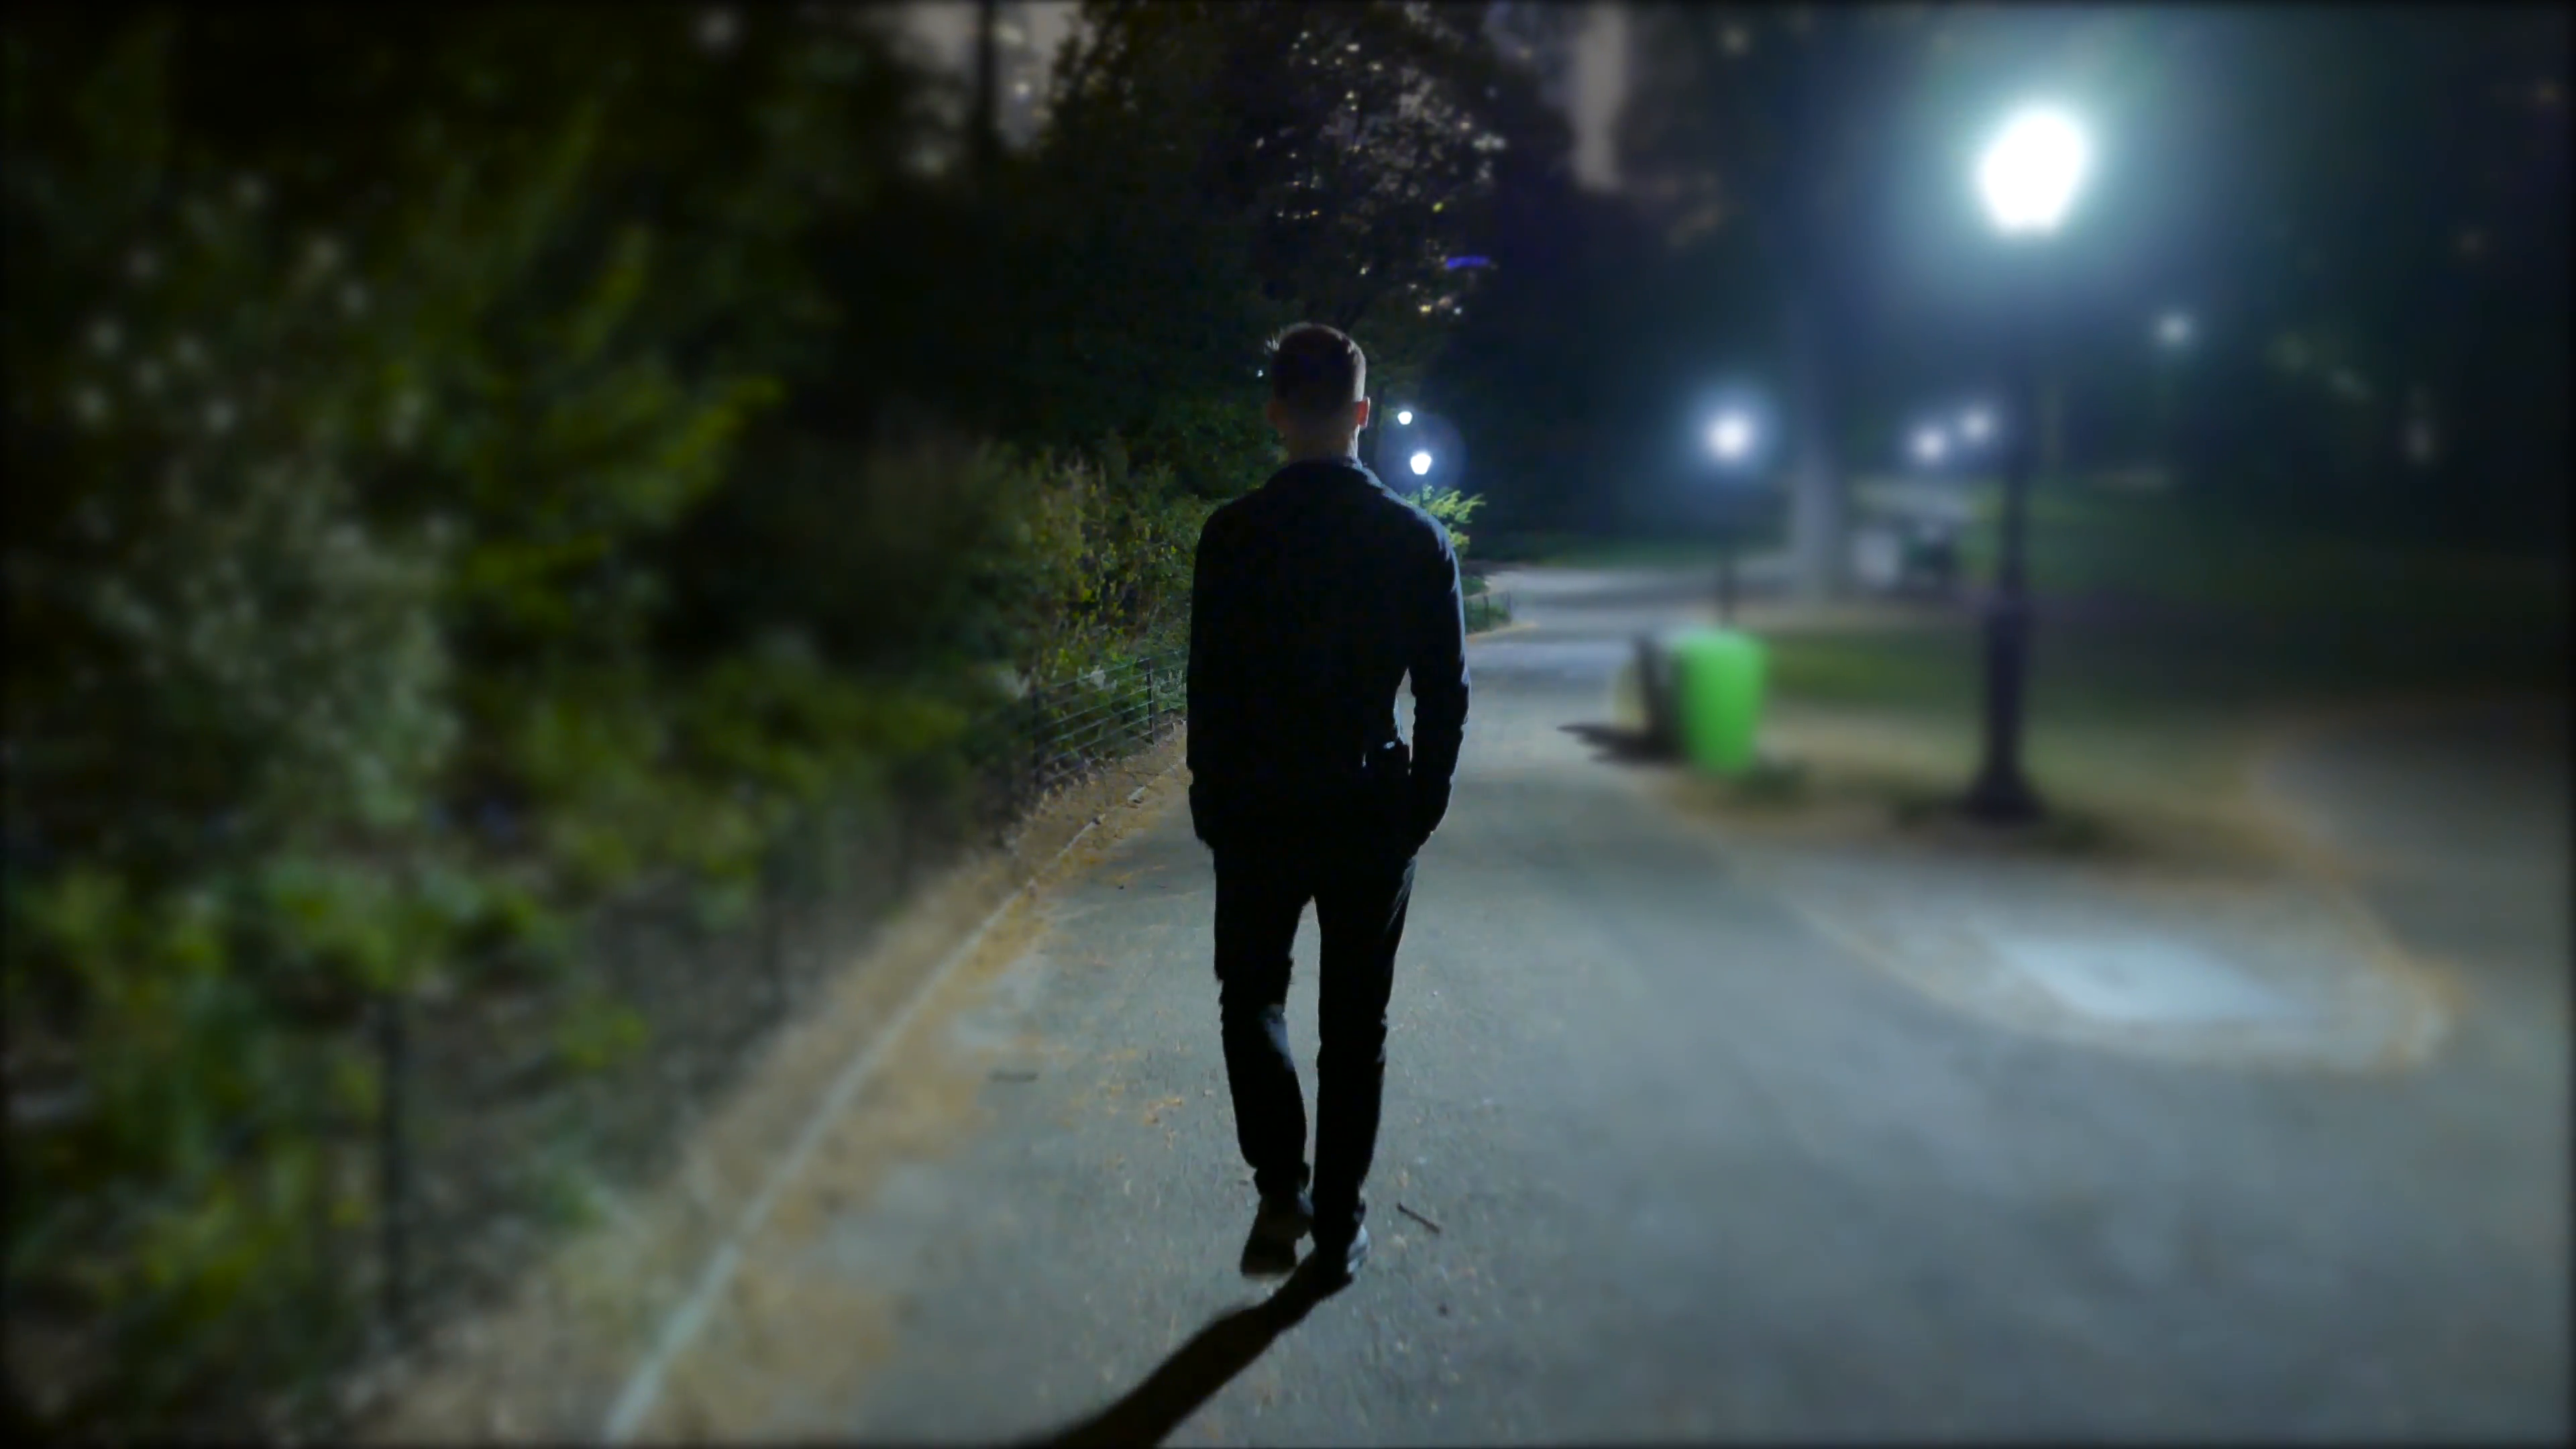 one man walking alone trough city park at night. spooky scary ...